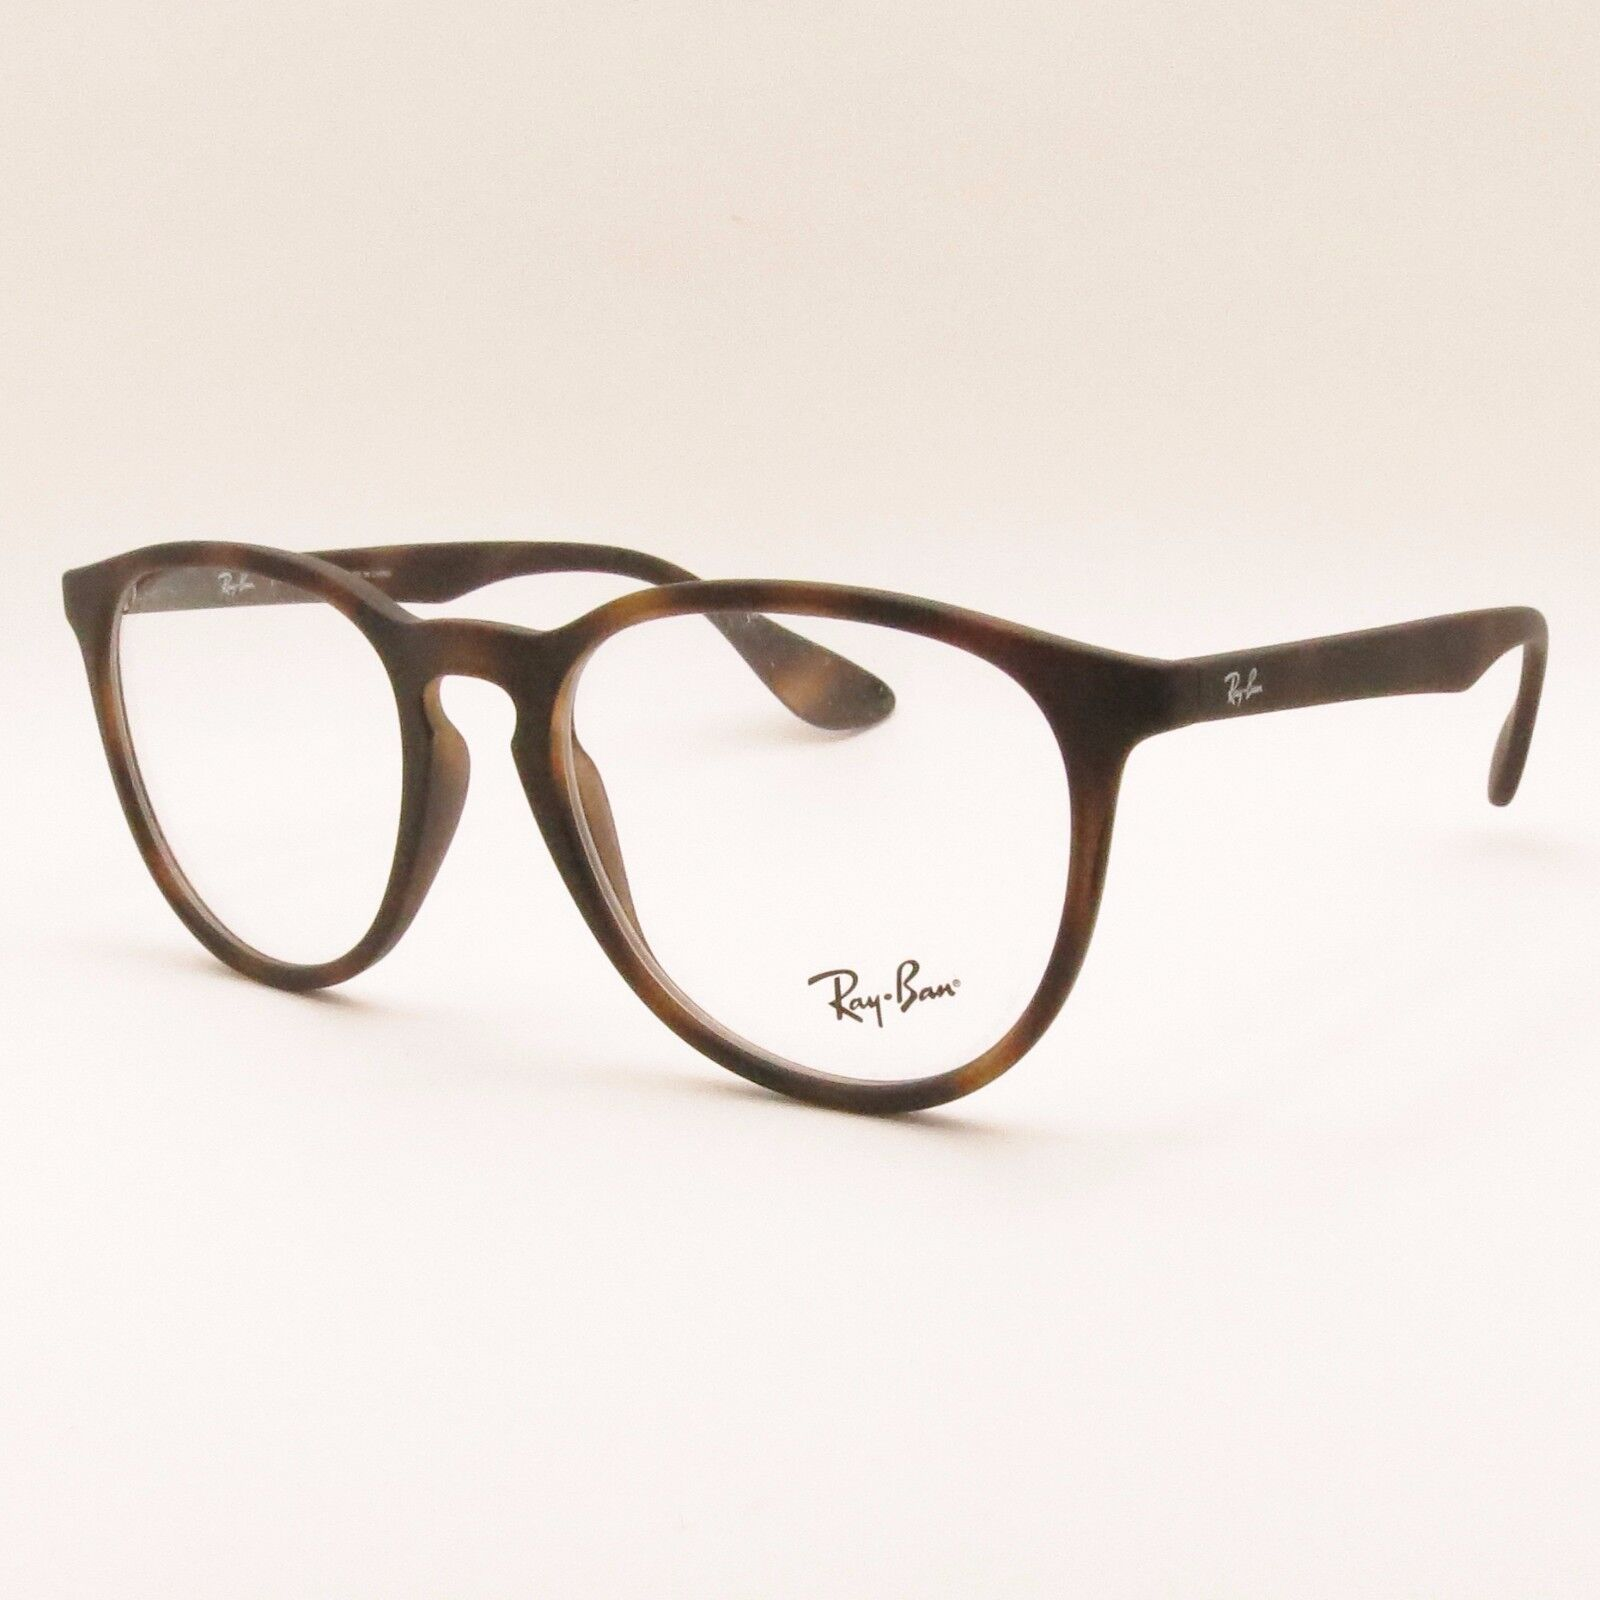 64145c8741 Ray Ban RB 7046 5364 Matte Black Rubber RX Frame New Authentic Buyer Picks  Size